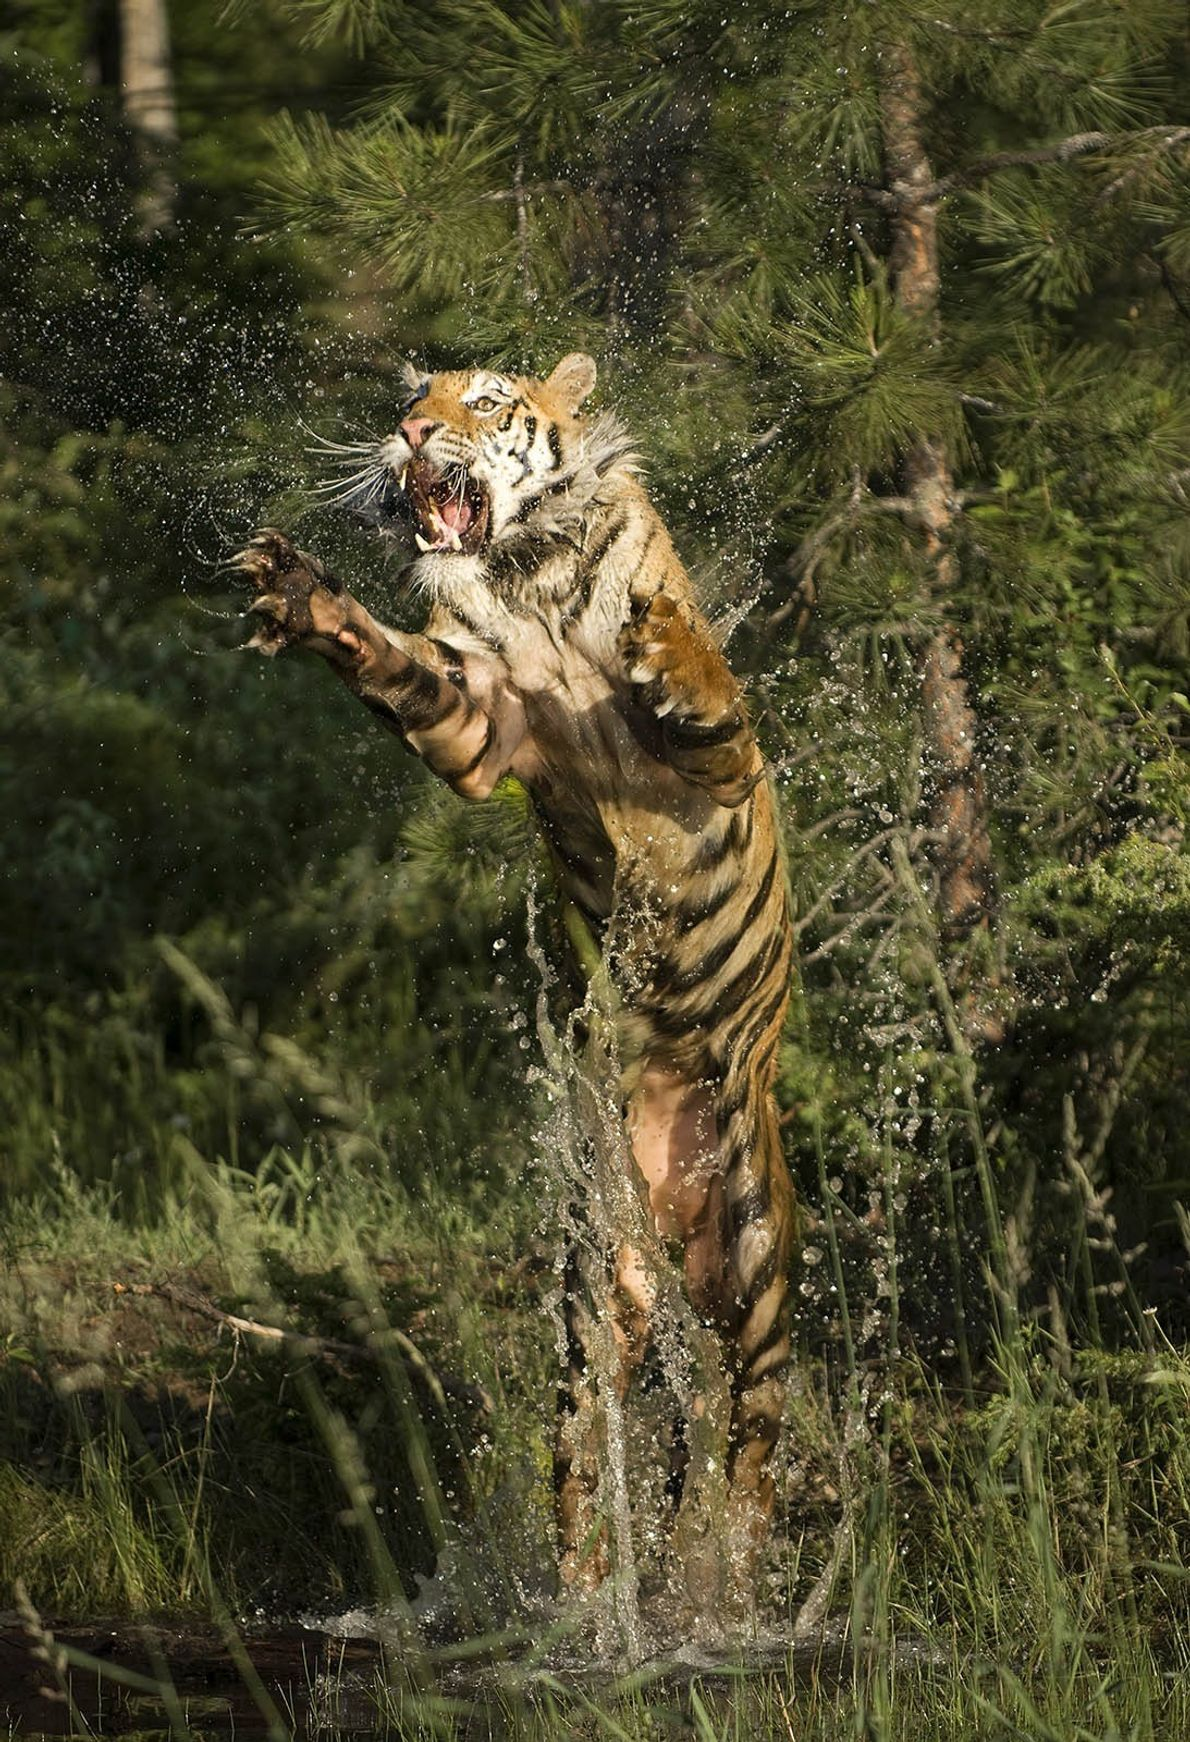 A Siberian tiger leaps from the water.